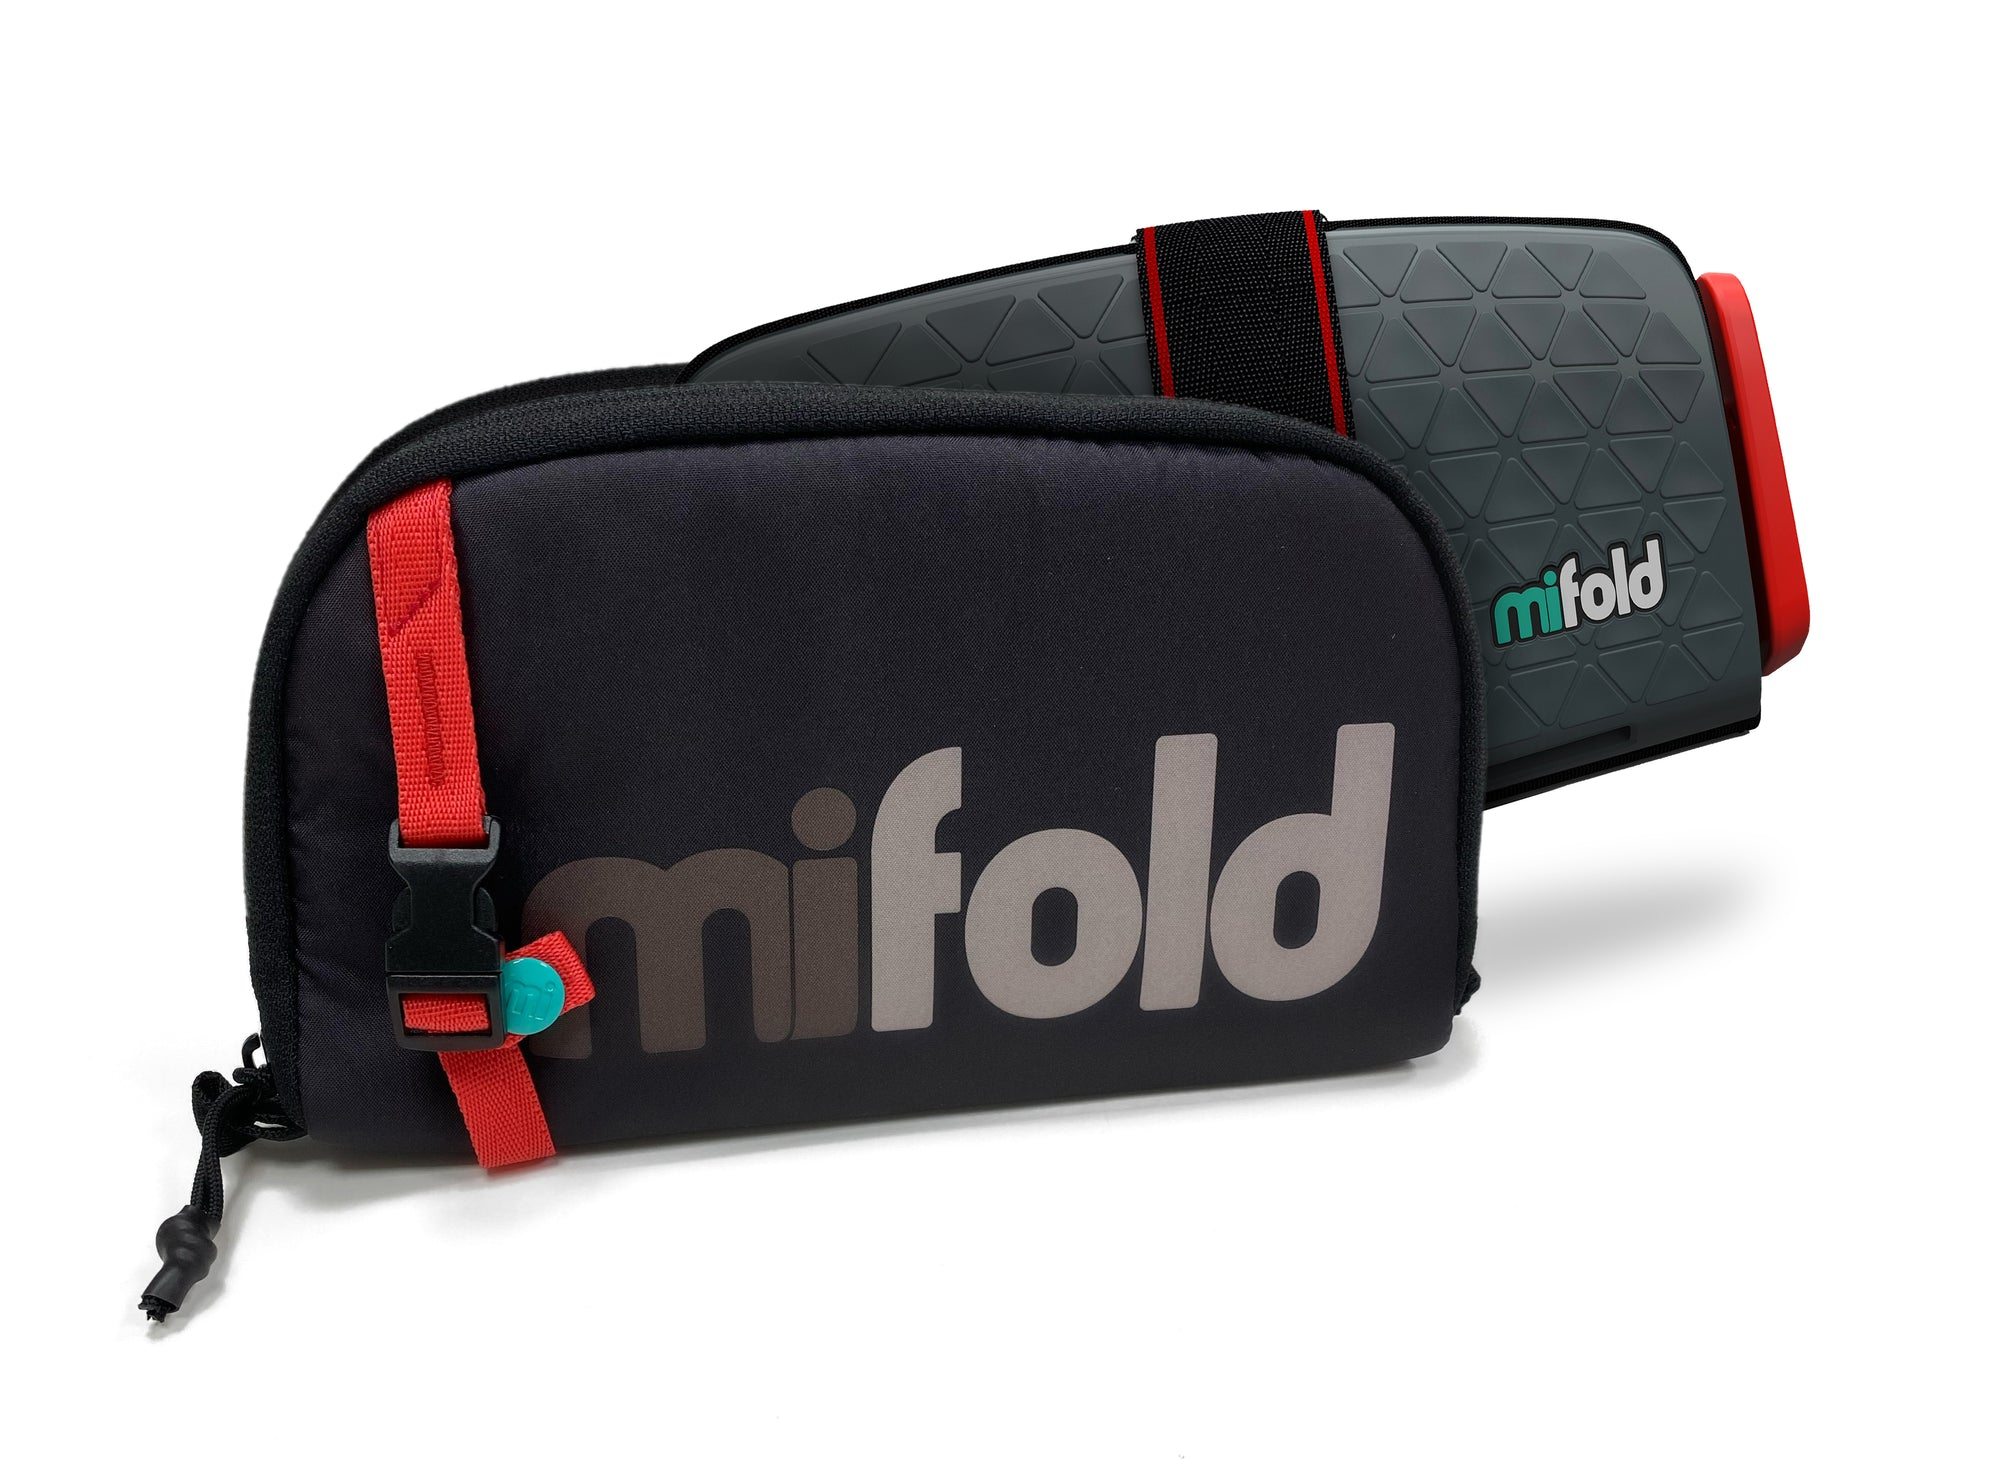 mifold Original and designer carry bag